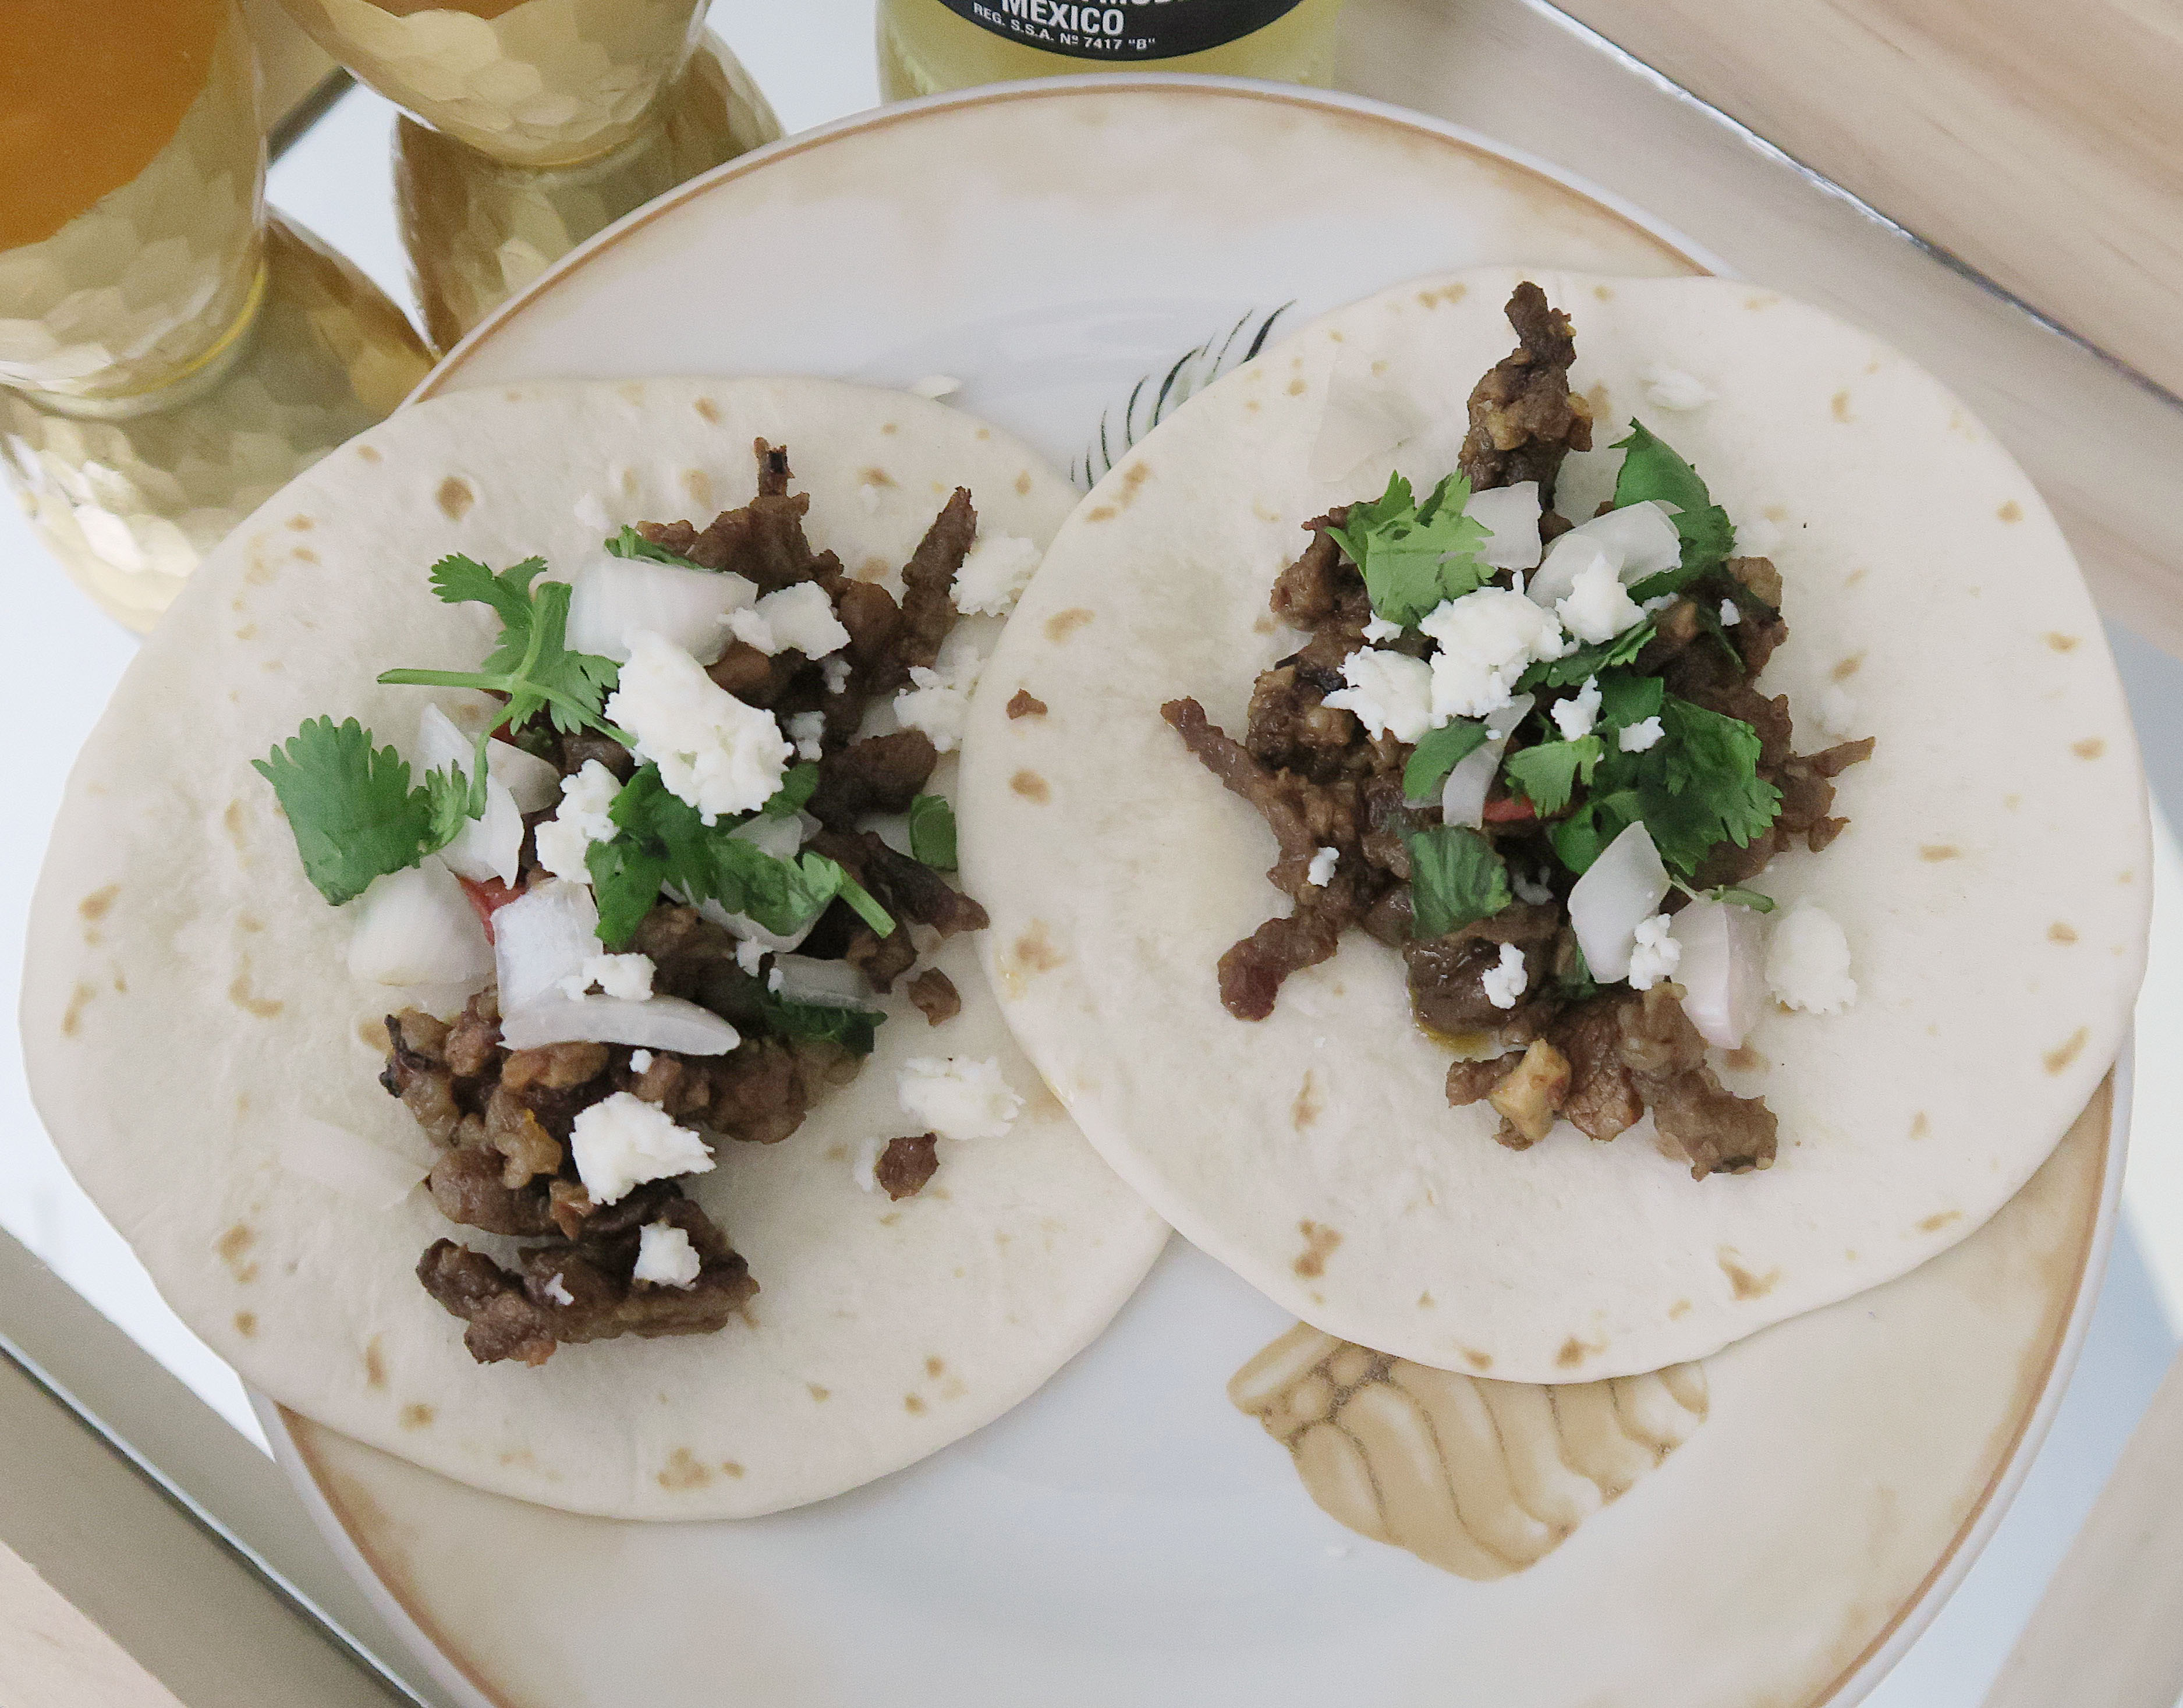 Mexican Street Tacos by Erica Valentin